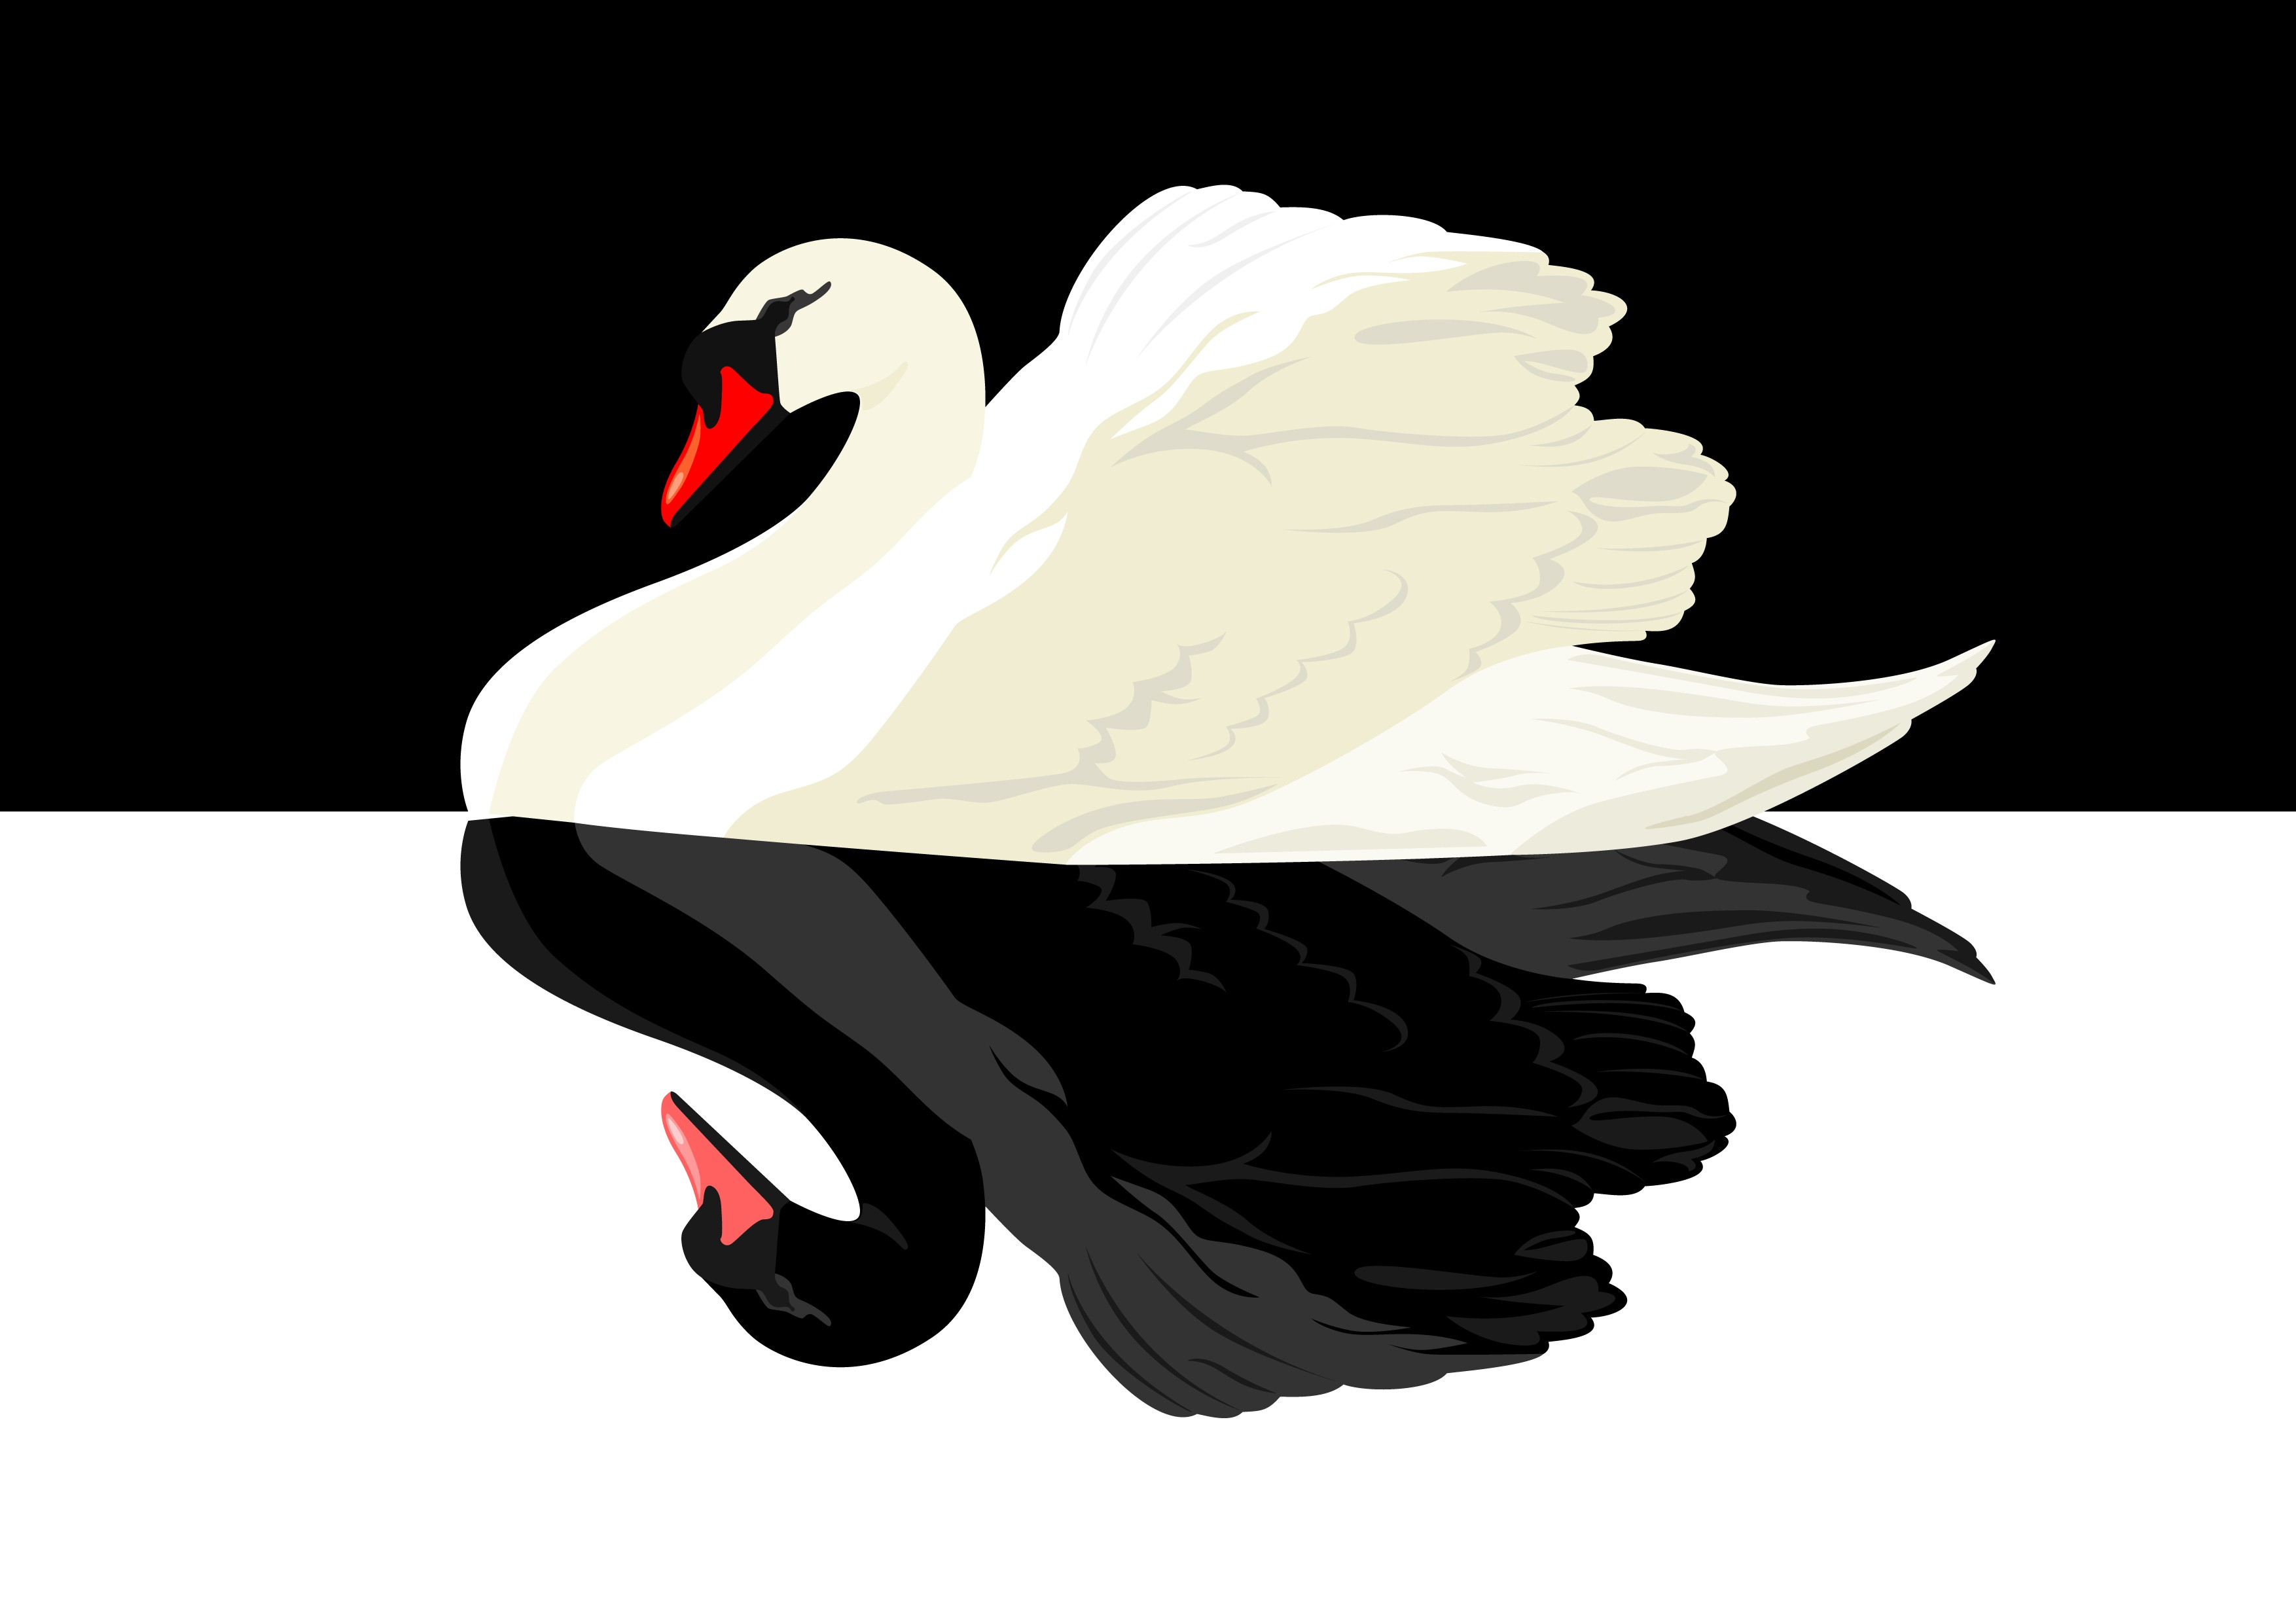 A white swan with its reflection as a black swan.